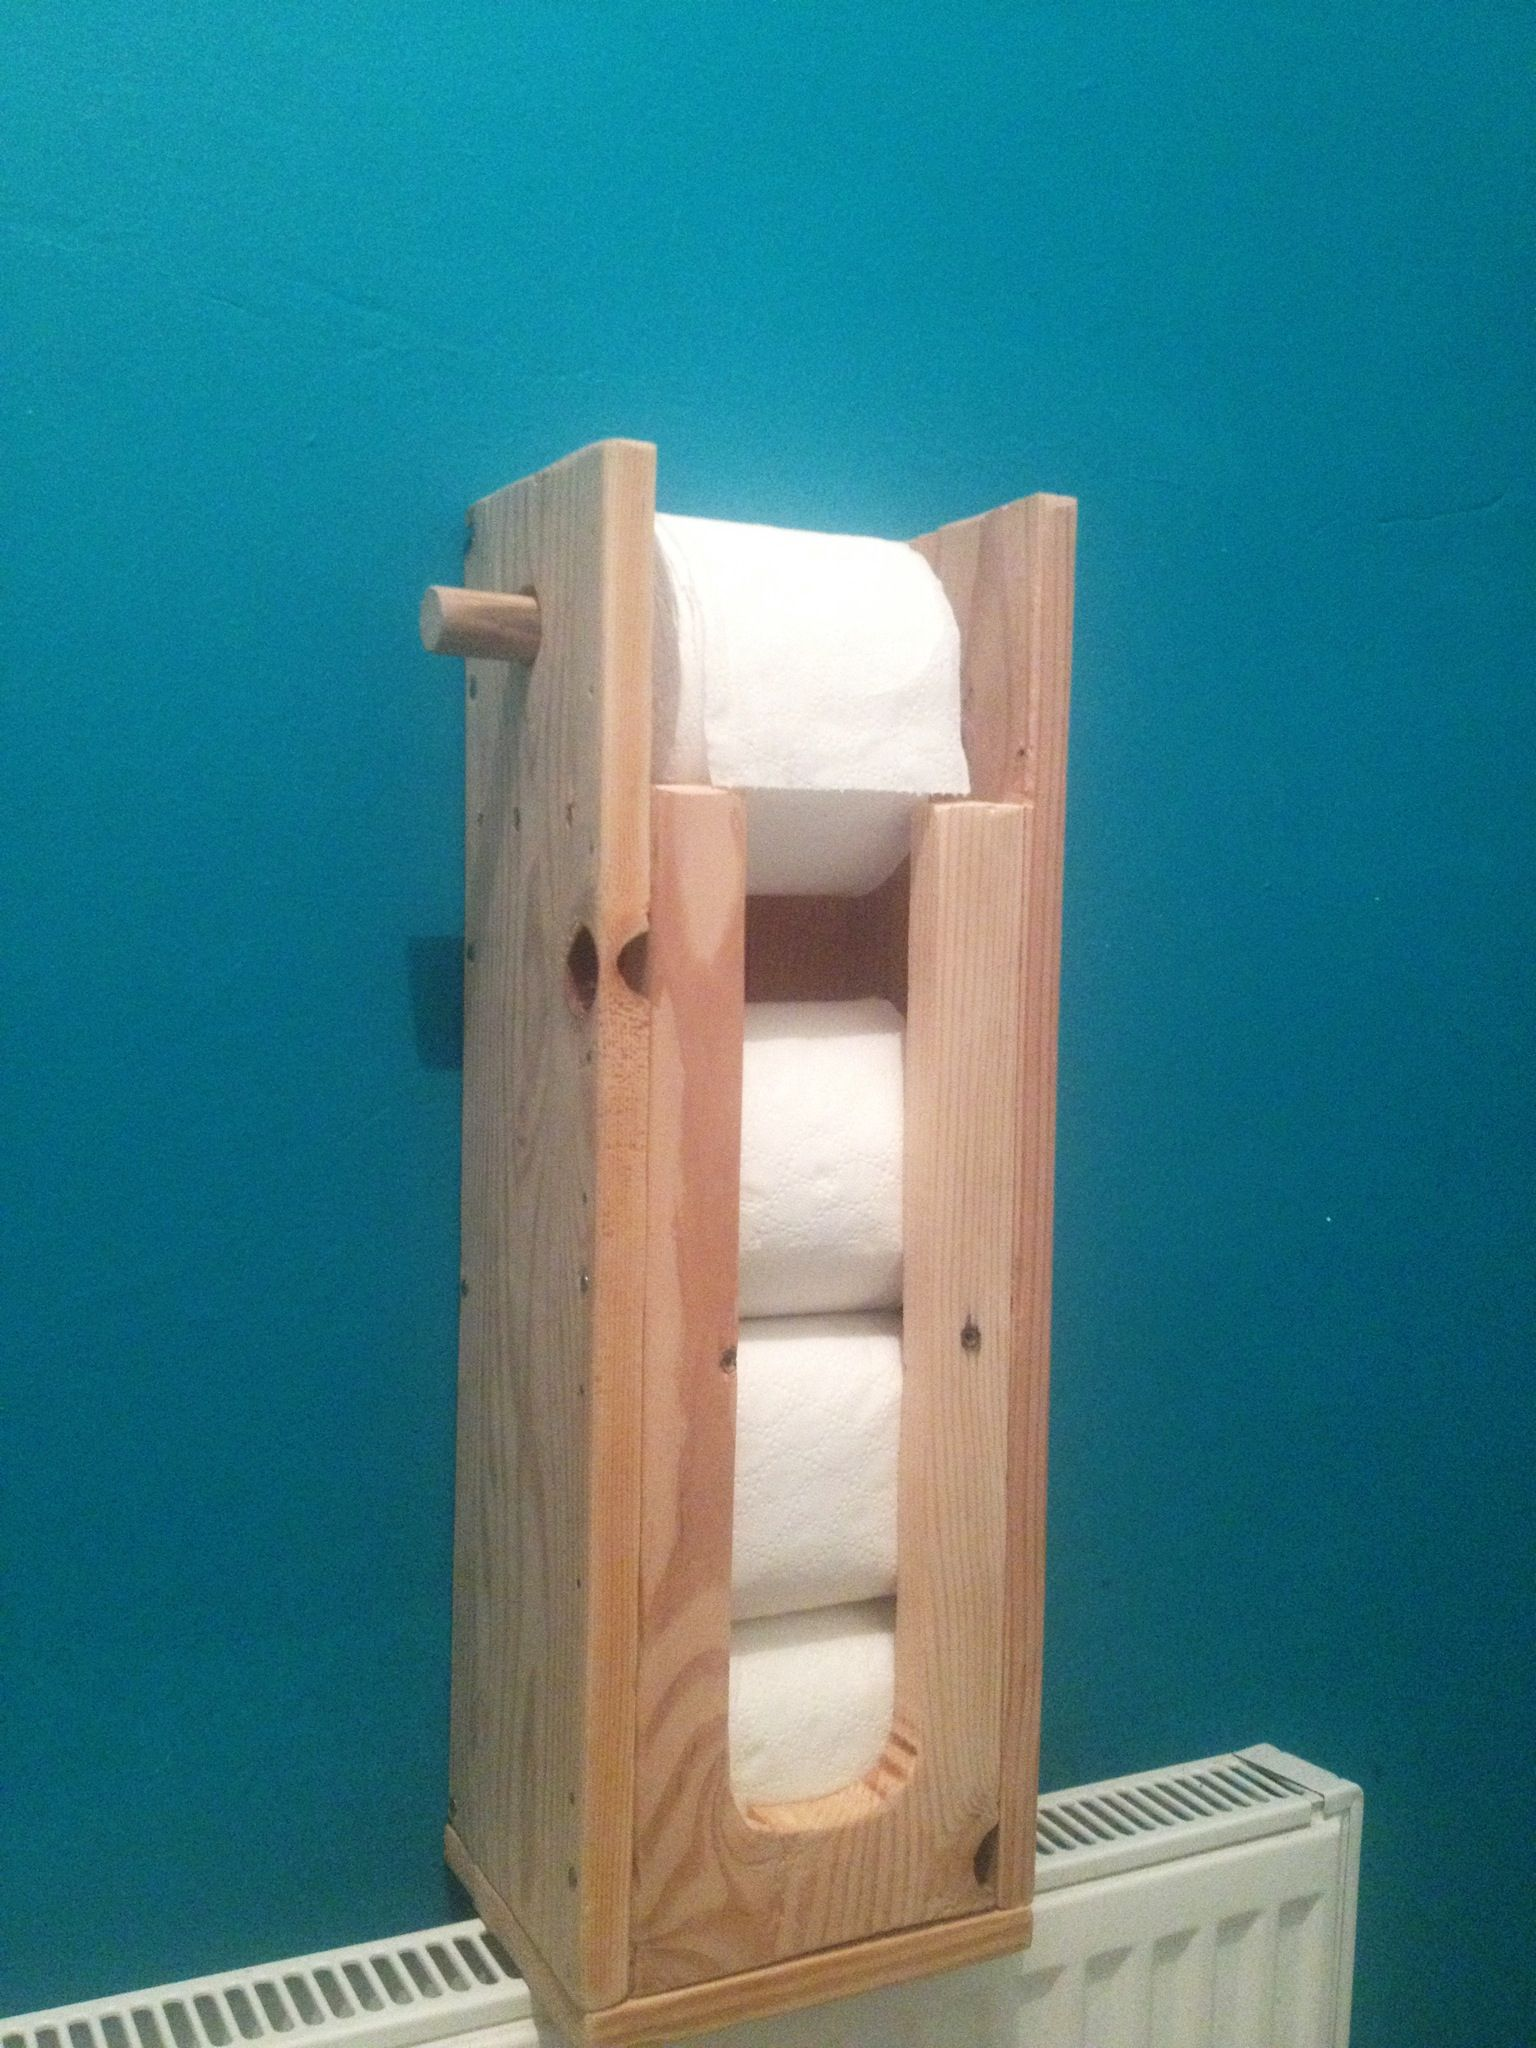 Wood Toilet Roll Holder An Upgrade Of My Loo Roll Holder Woodenideas Wooden